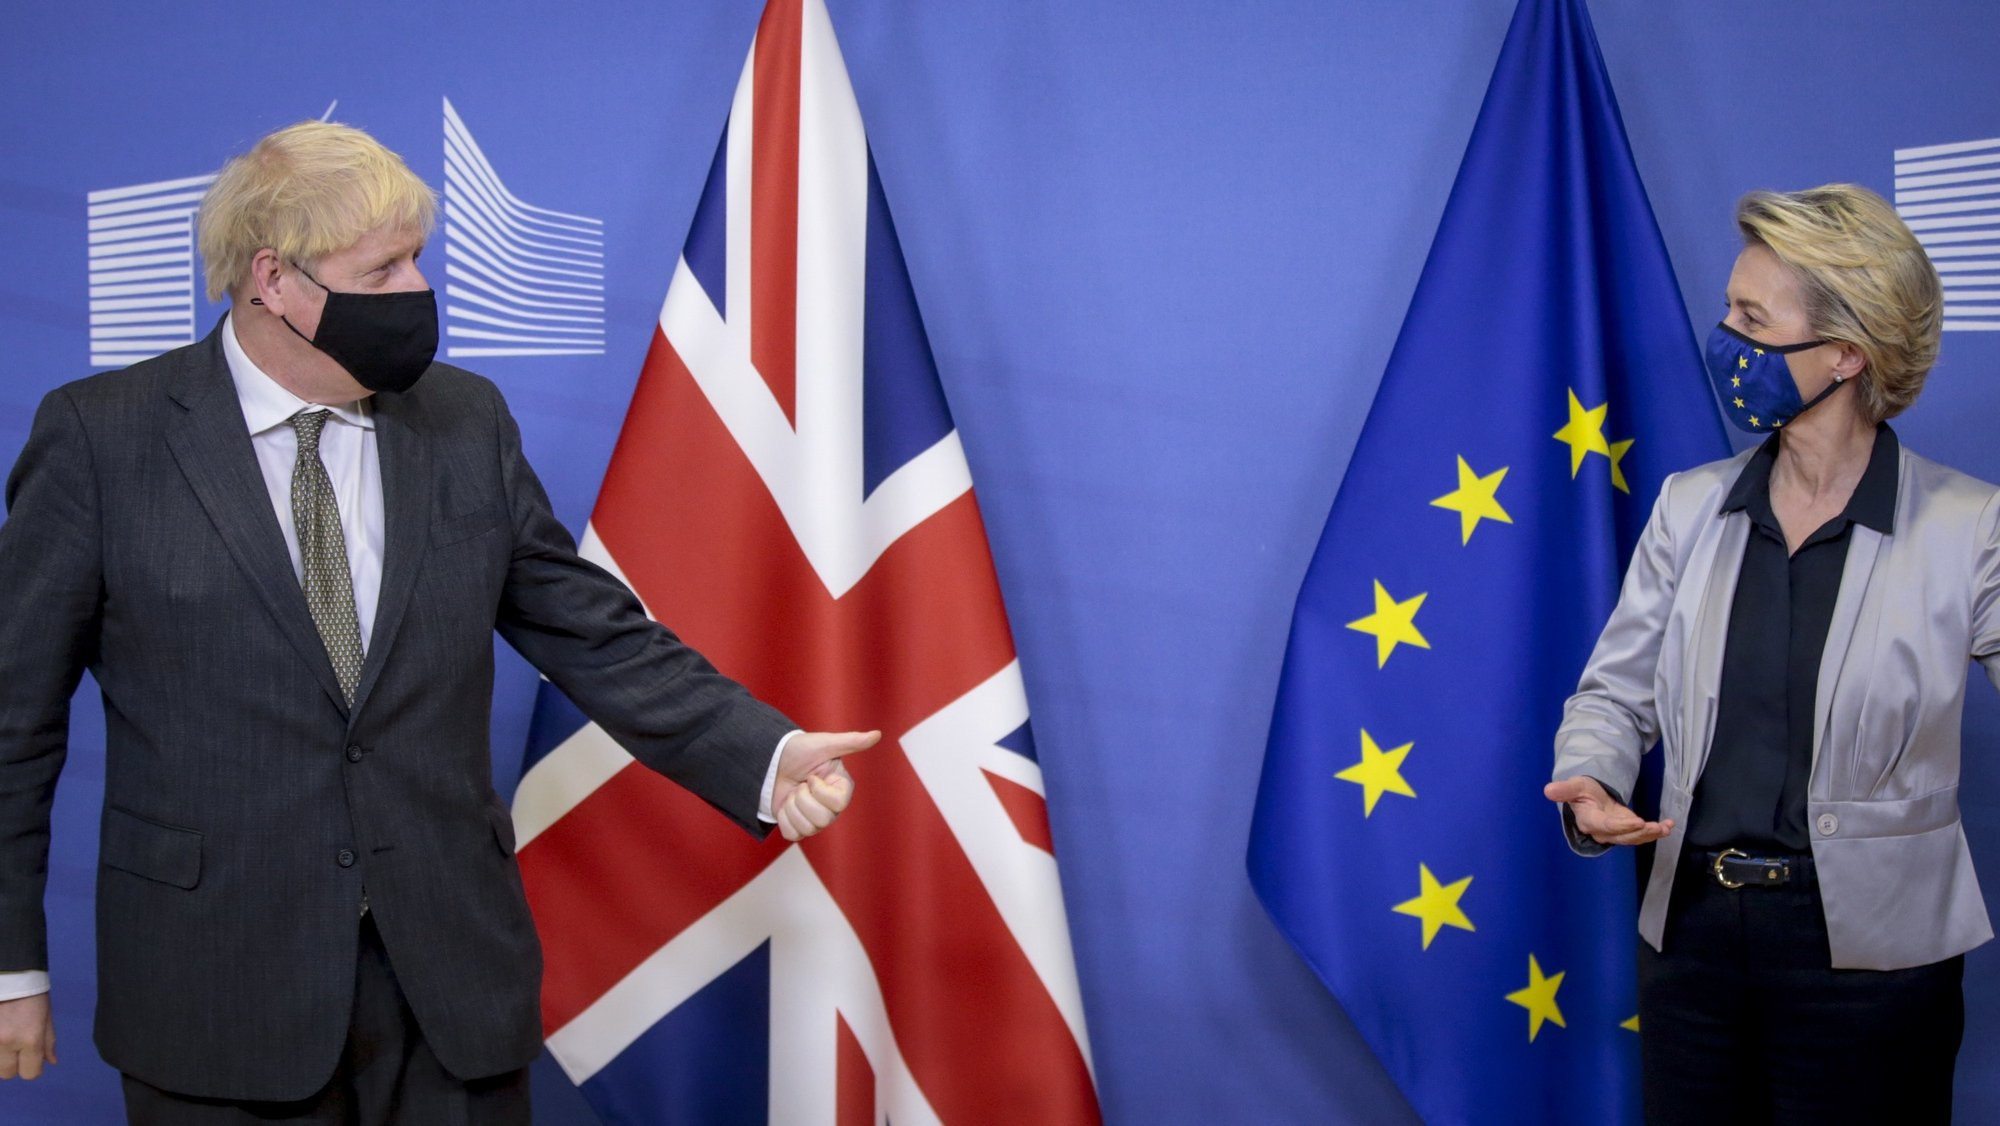 epa08873143 Britain's Prime Minister Boris Johnson (L) gestures towards European Commission President Ursula von der Leyen (R) welcoming him prior to post-Brexit trade deal talks, in Brussels, Belgium, 09 December 2020. A negotiations phase of eleven months that started on 31 January 2020 following the UK's exit from the EU ends on 31 December 2020.  EPA/OLIVIER HOSLET / POOL